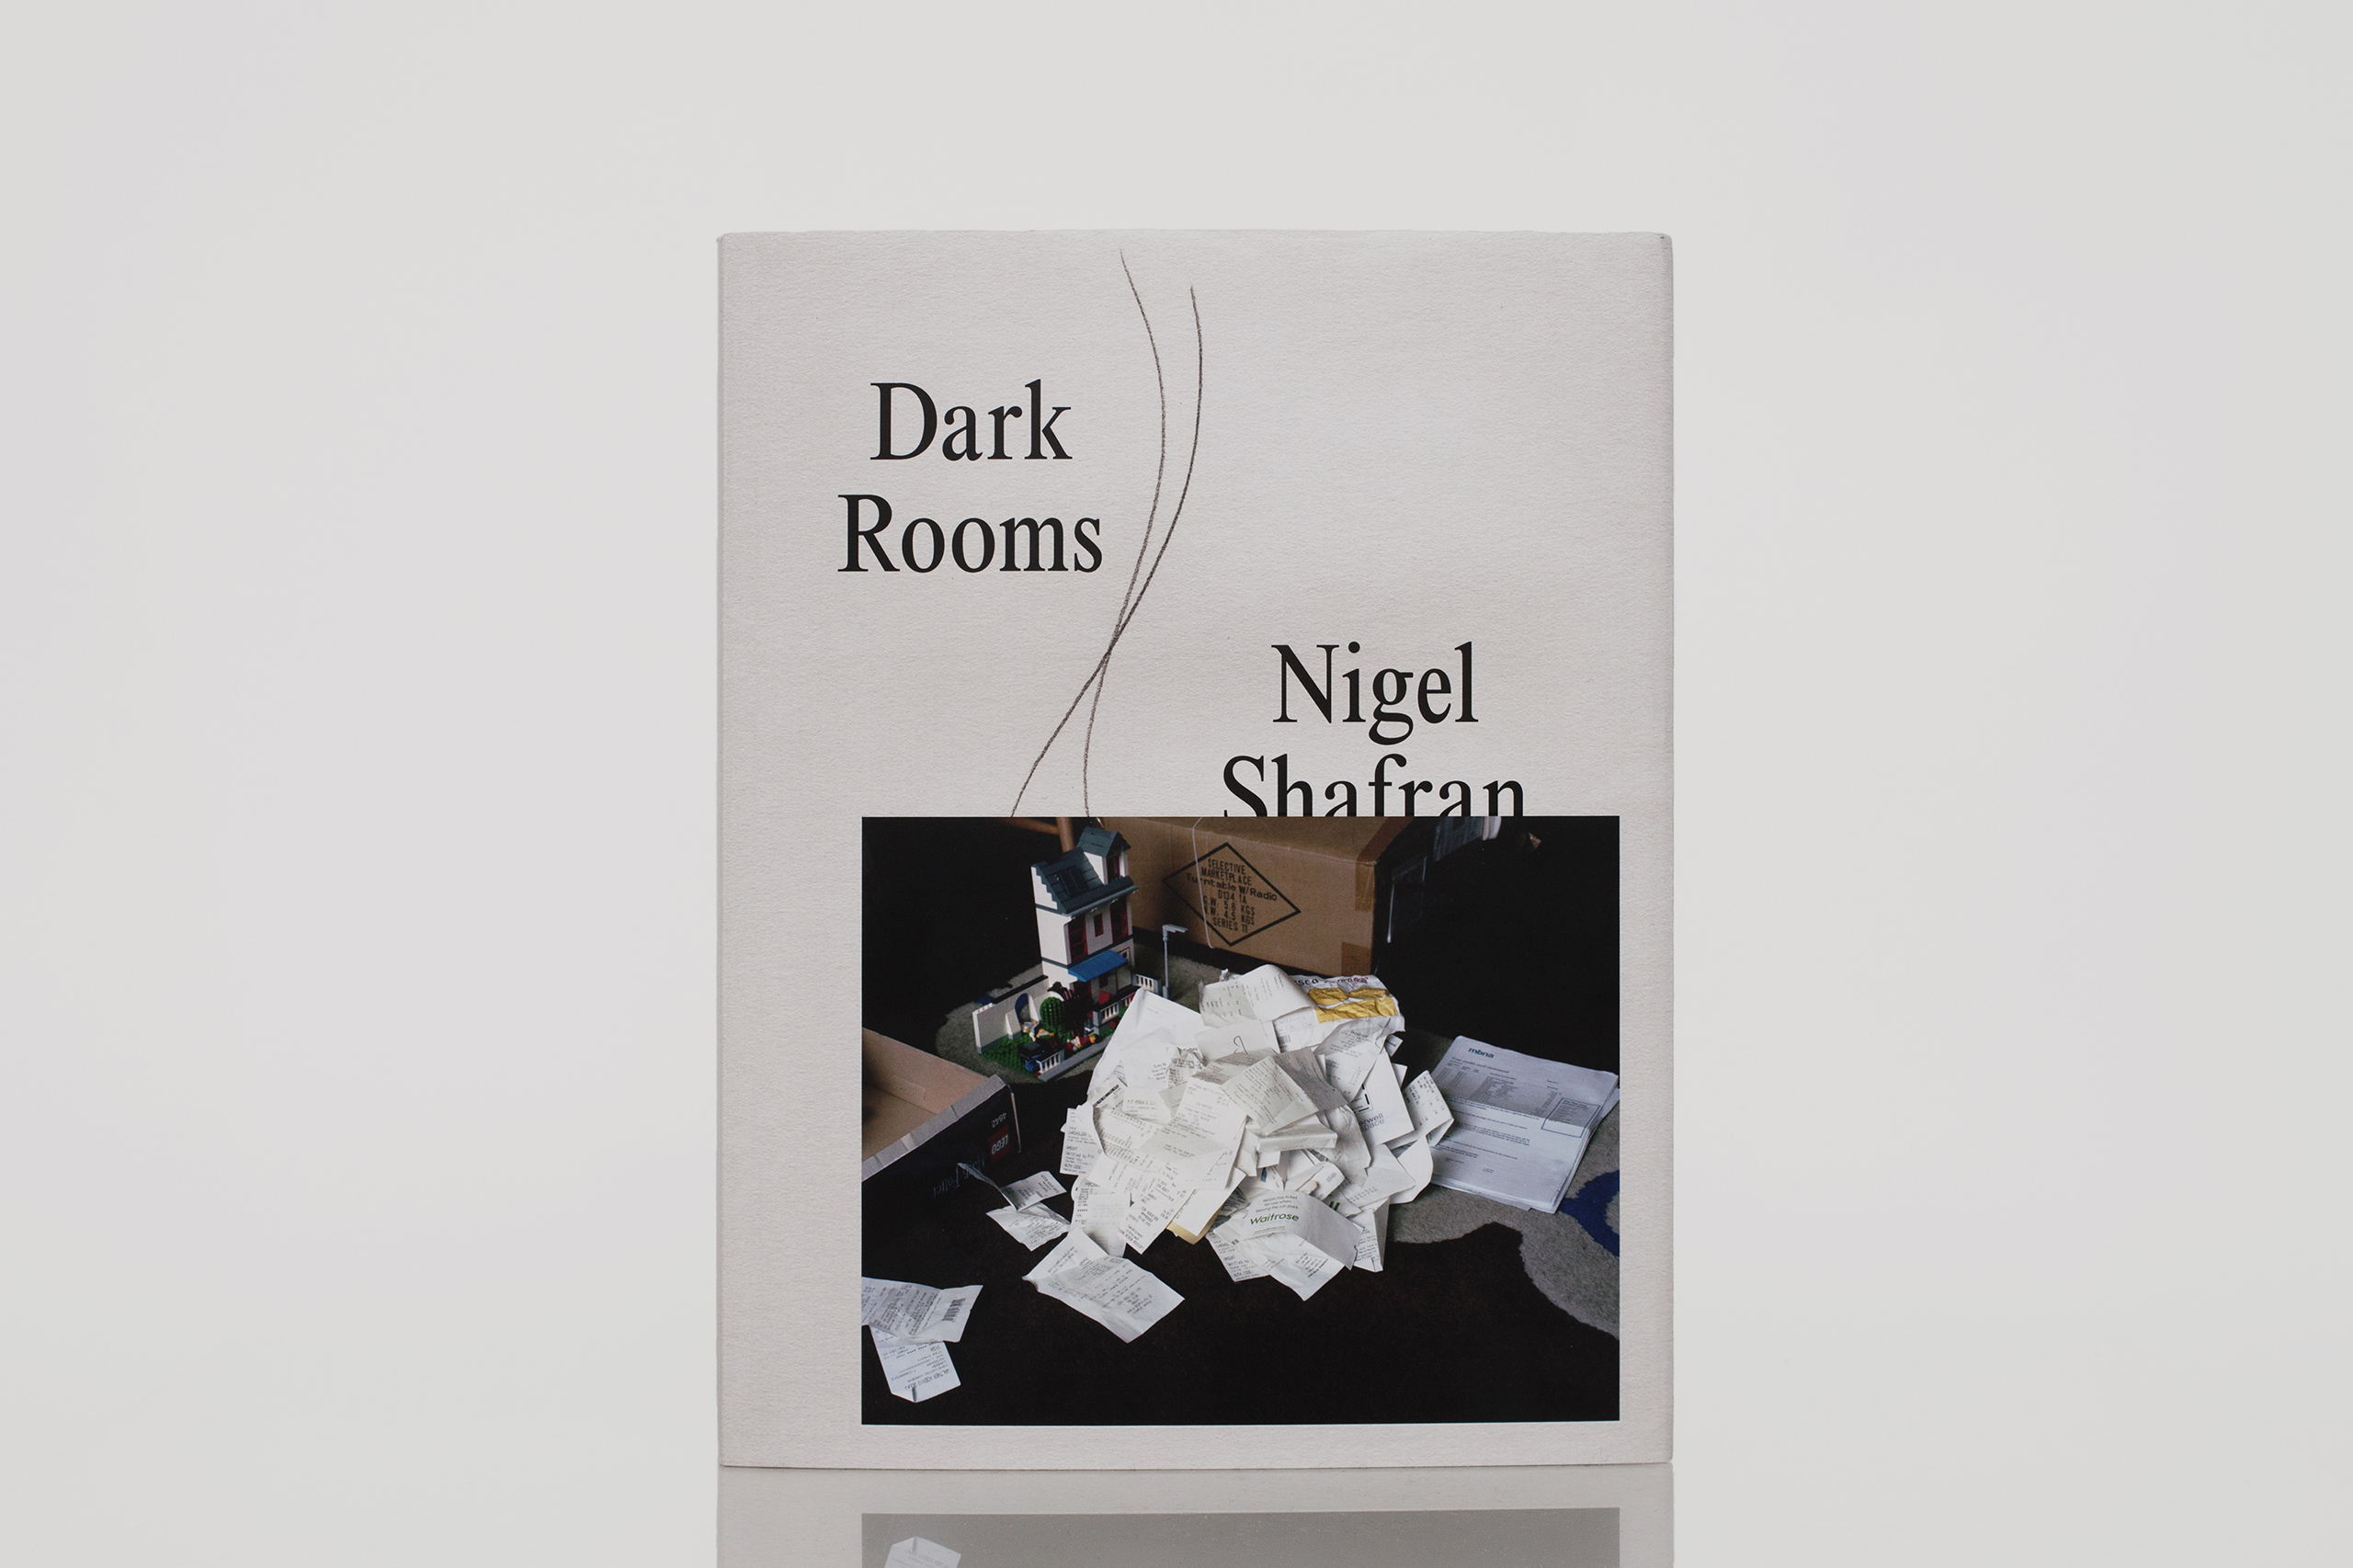 Dark Rooms by Nigel ShafranPublished by MACK